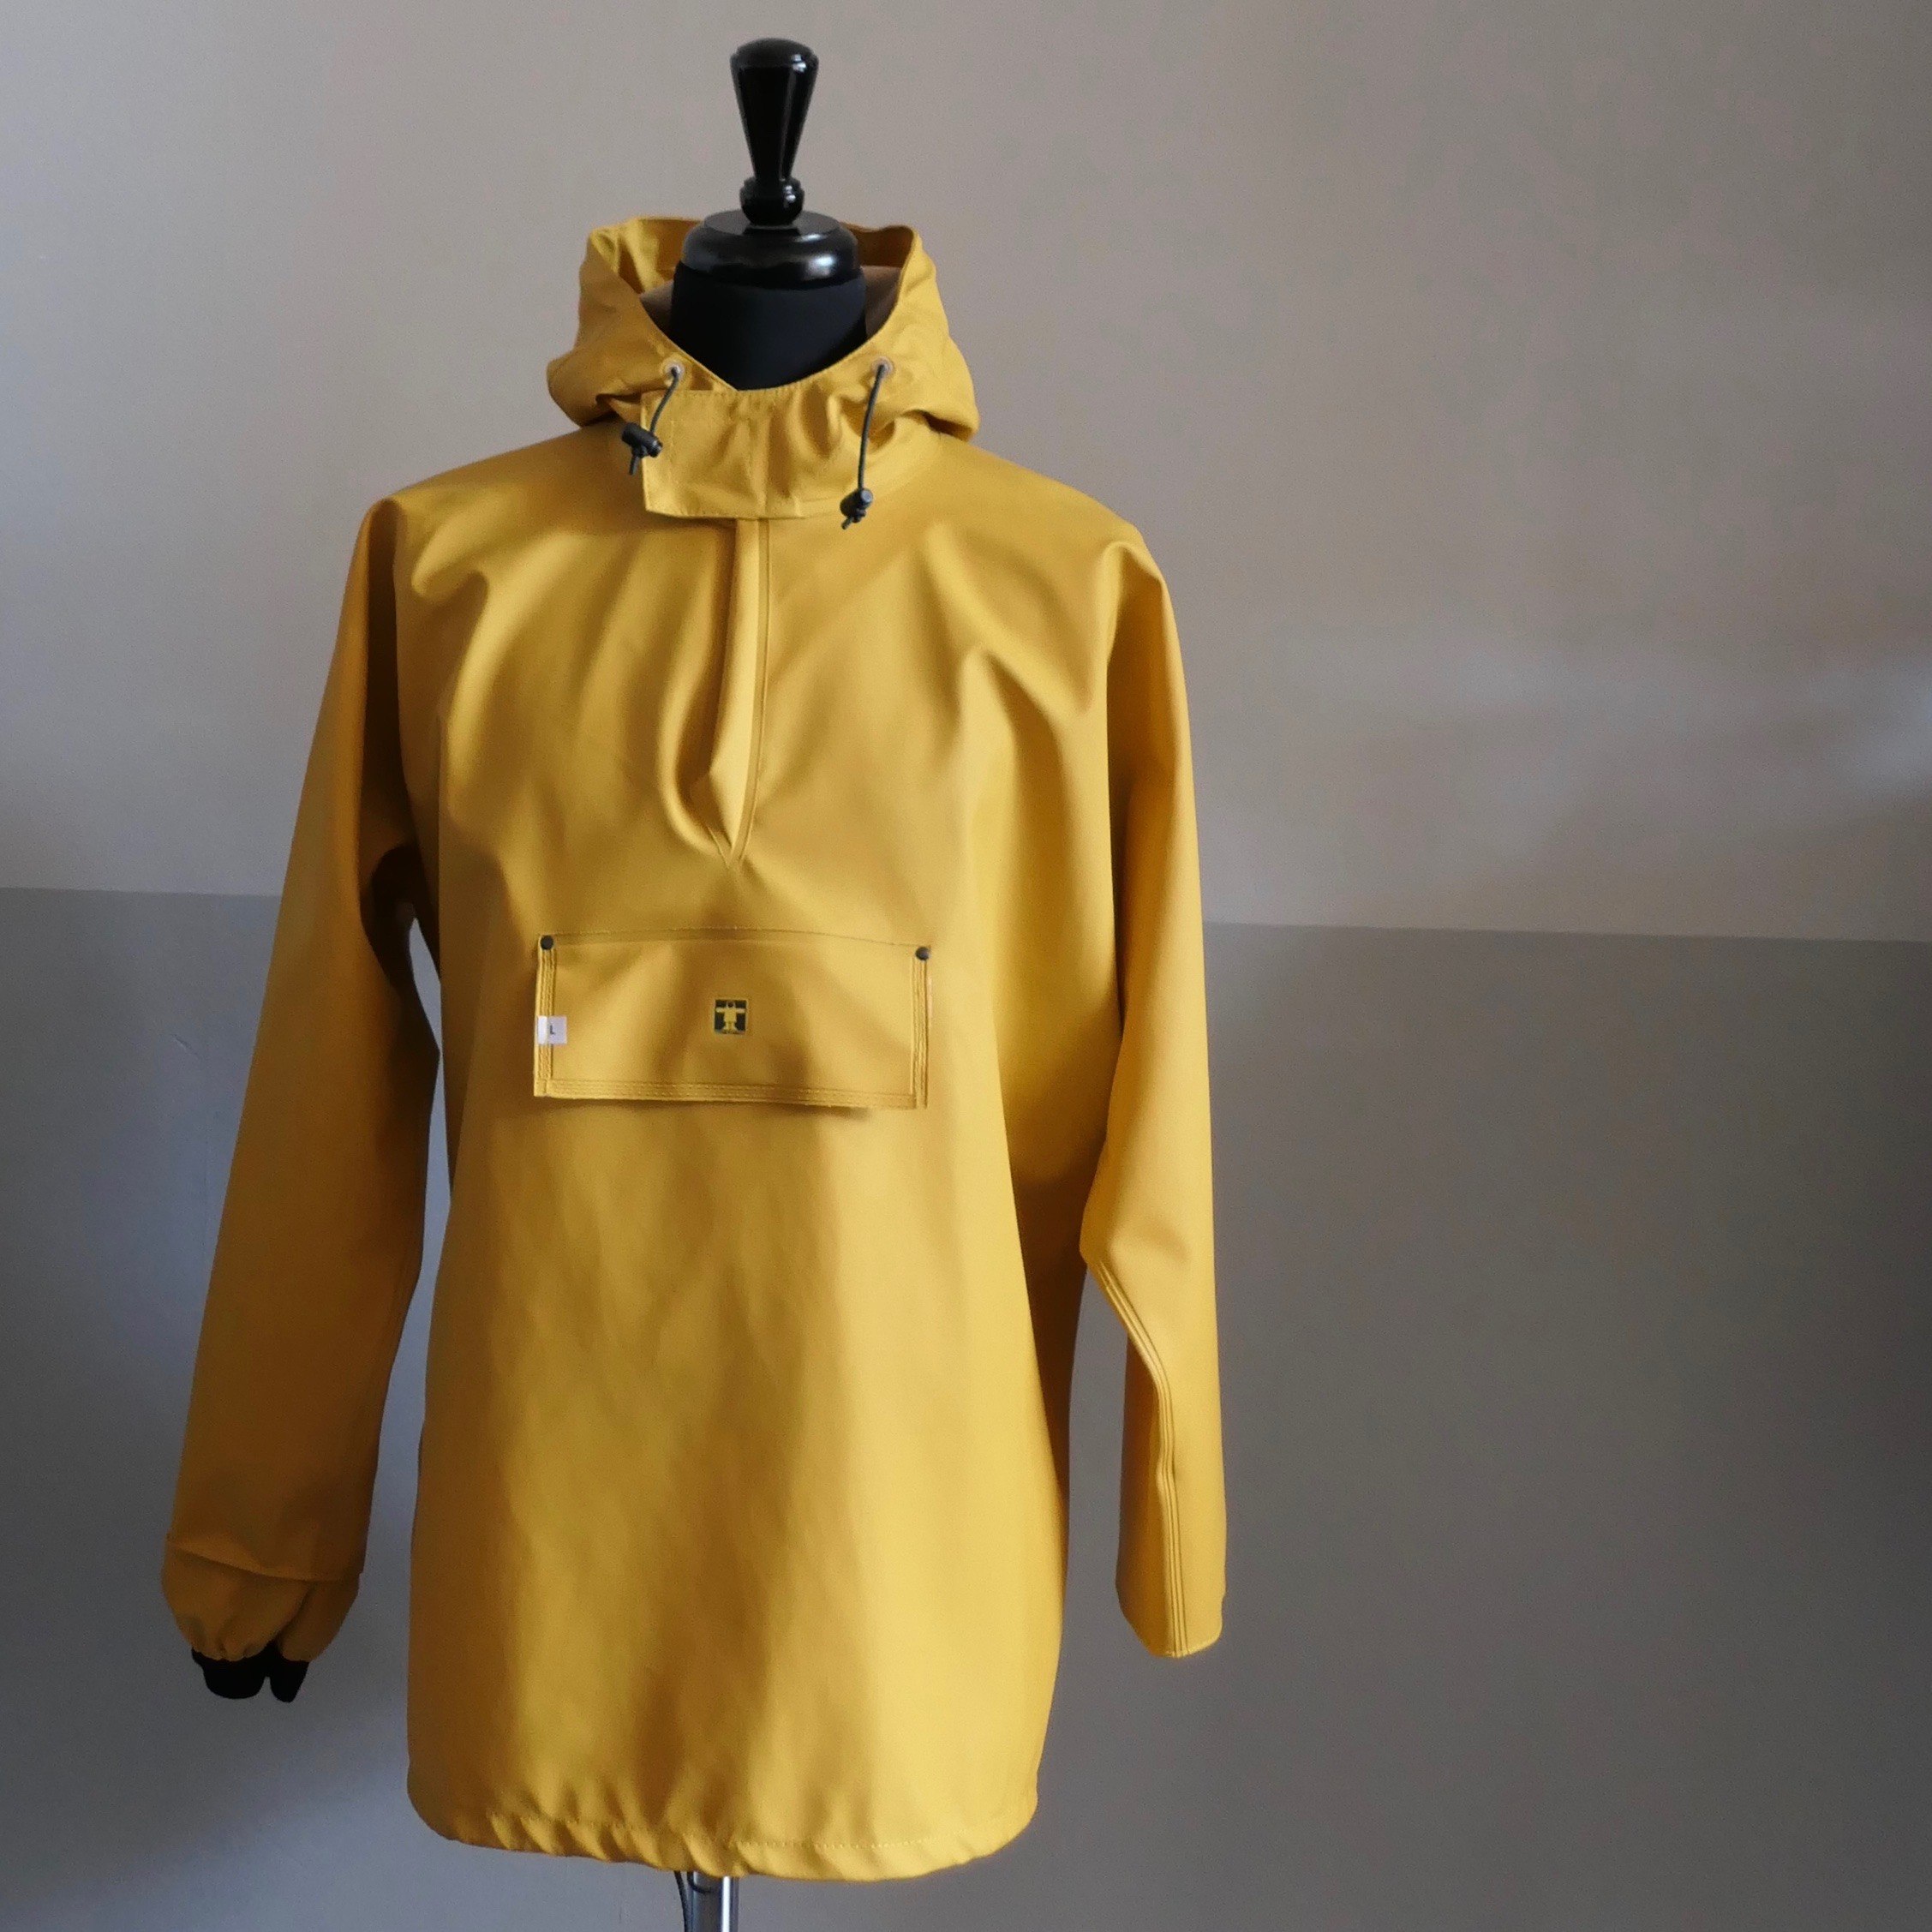 Heavy duty sailor smock Yellow